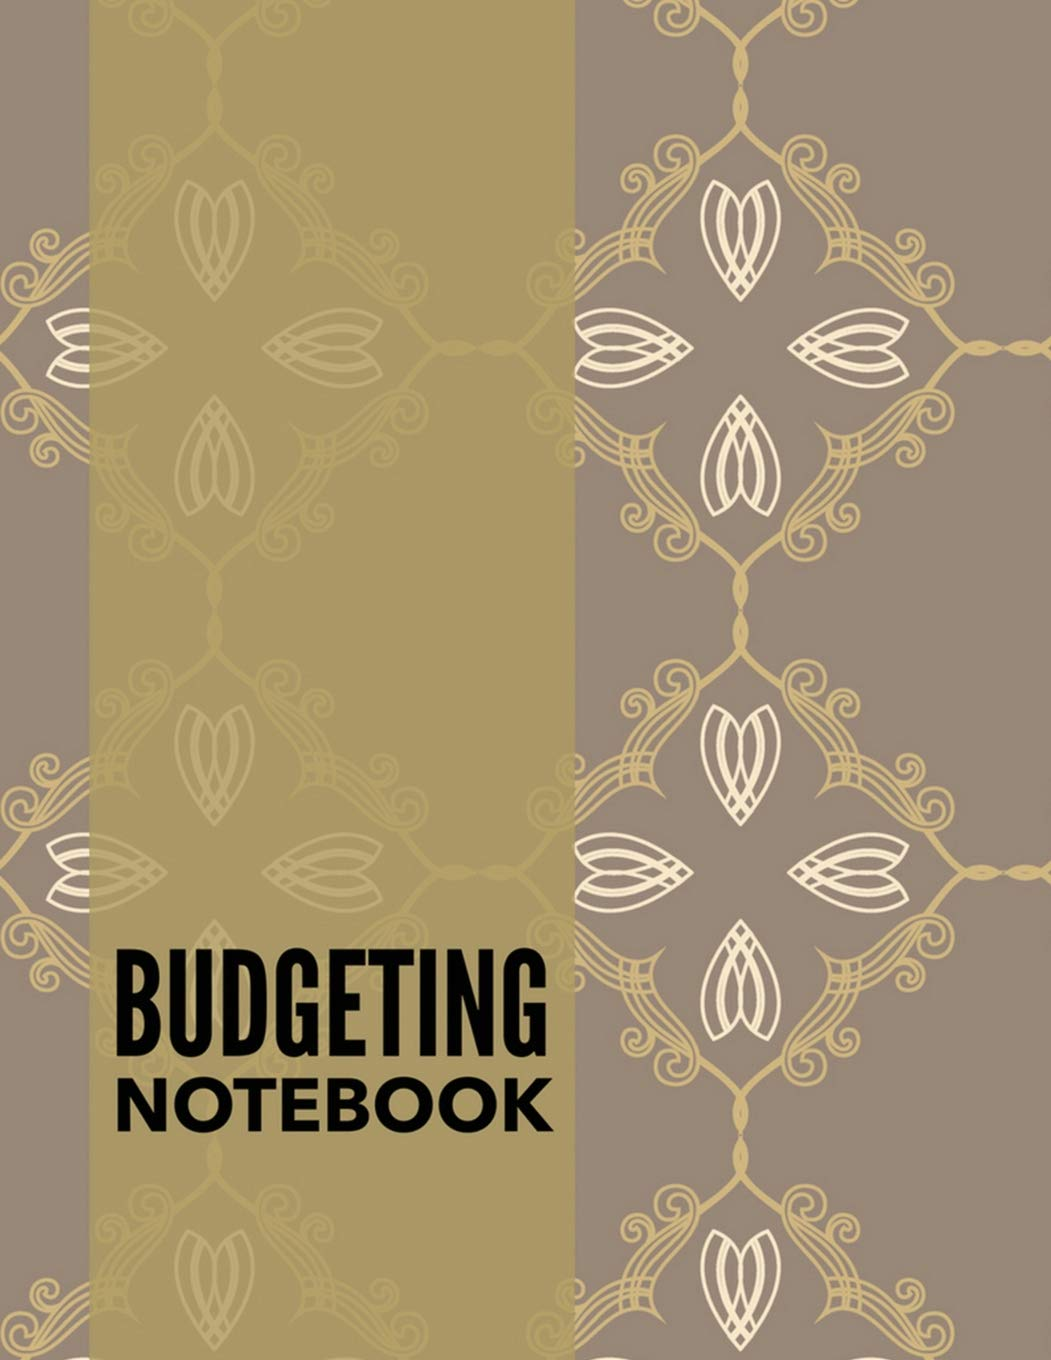 budgeting notebook vintage design personal money management with